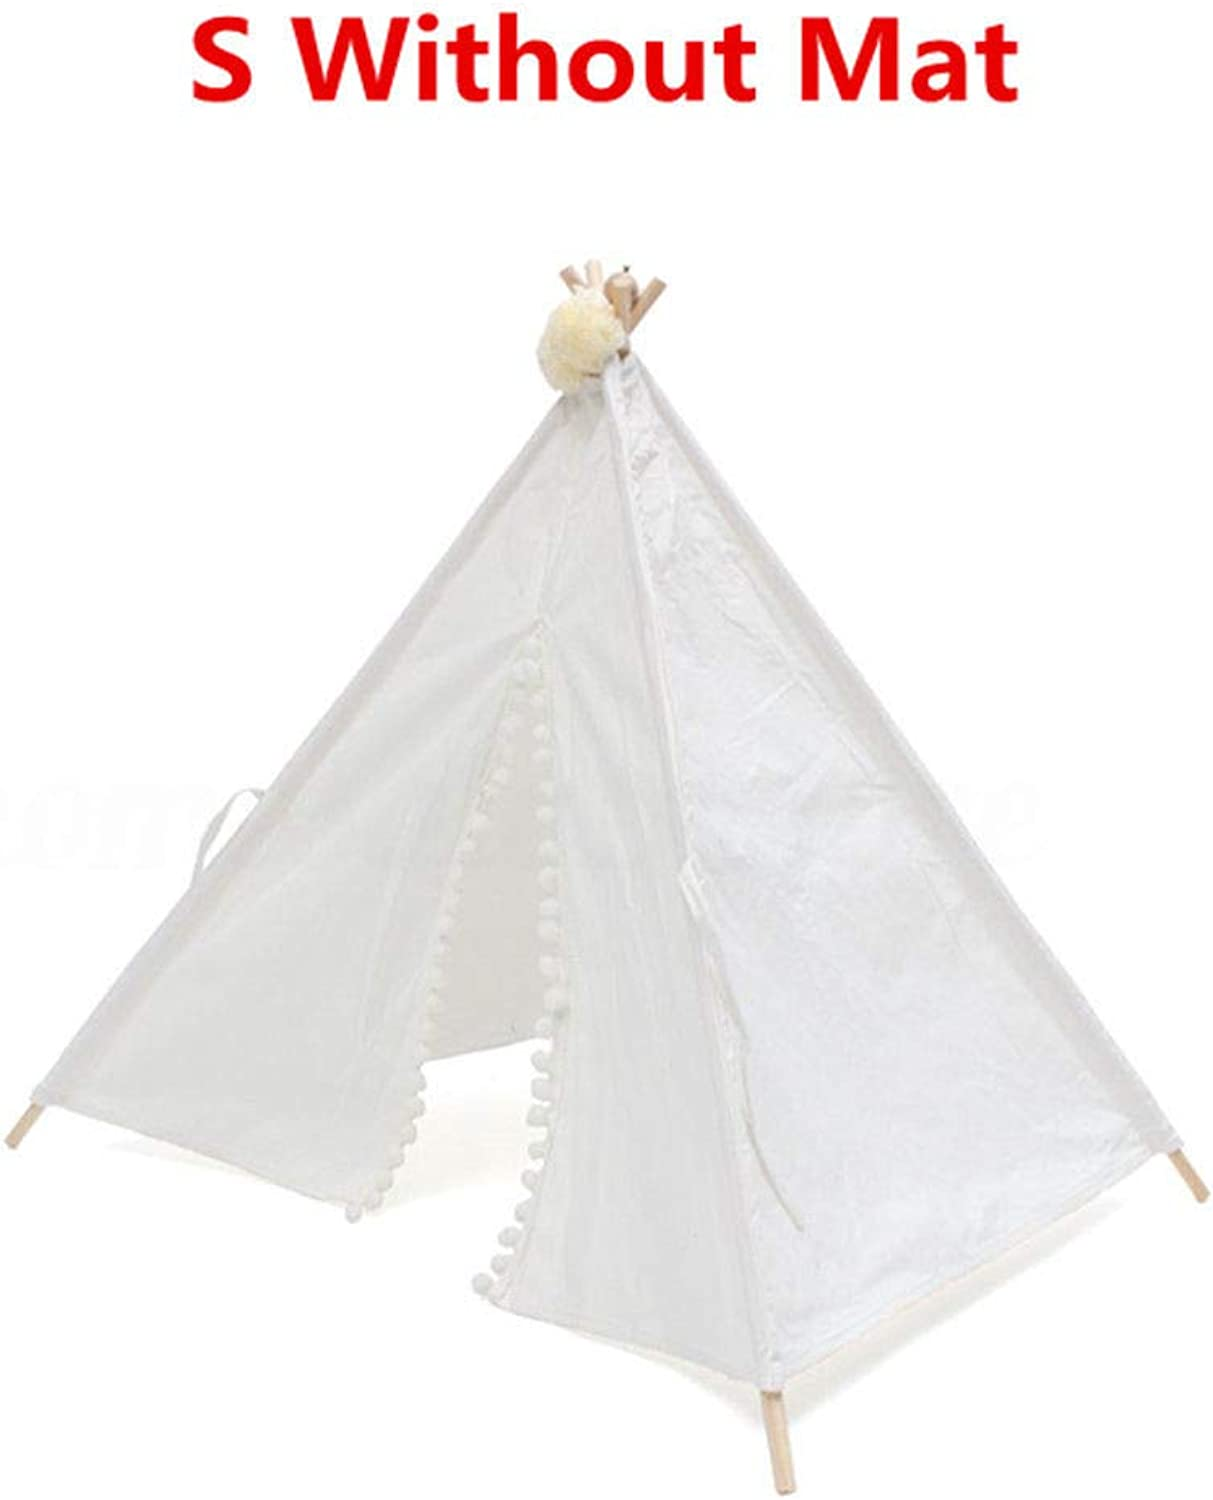 FidgetFidget Dog Cat Pet Teepee White Tent Portable Washable Sweet House Kids Play Tents S L S Without Mat (50  50  70Cm)